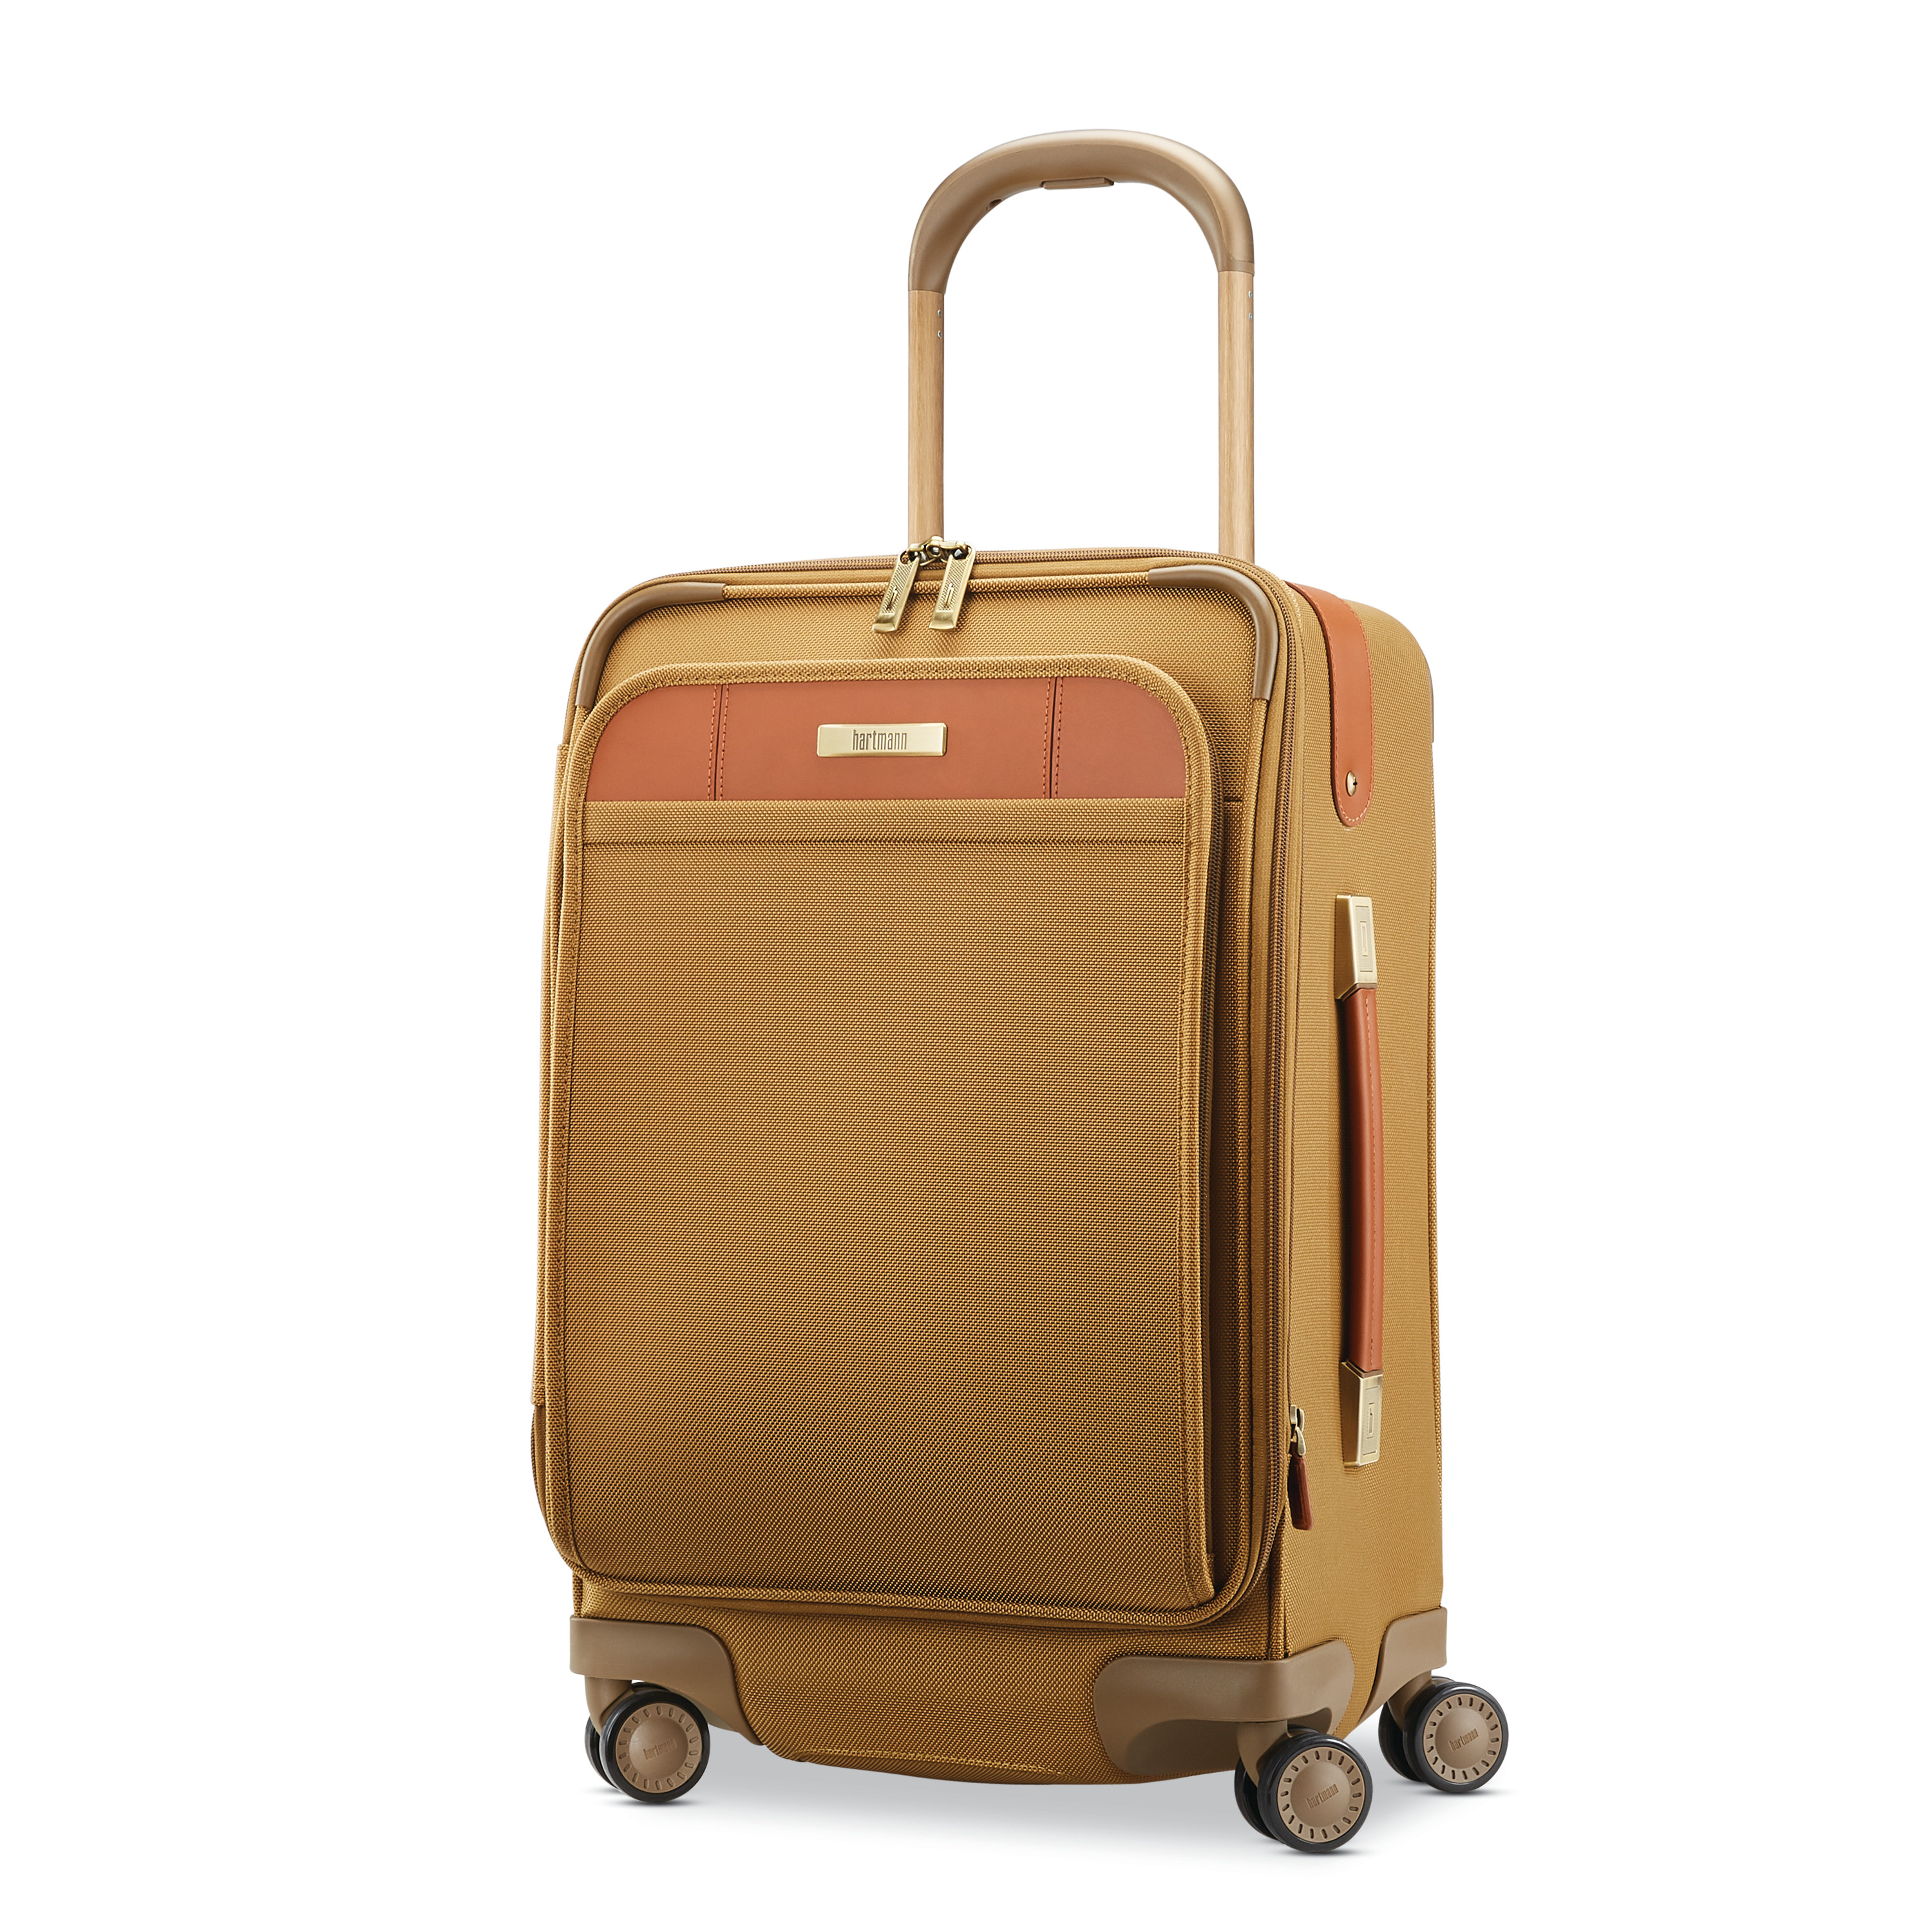 8b8e3814bb04 Hartmann Ratio Classic Deluxe 2 Global Carry-On Spinner in the color  Safari. Loading zoom. new